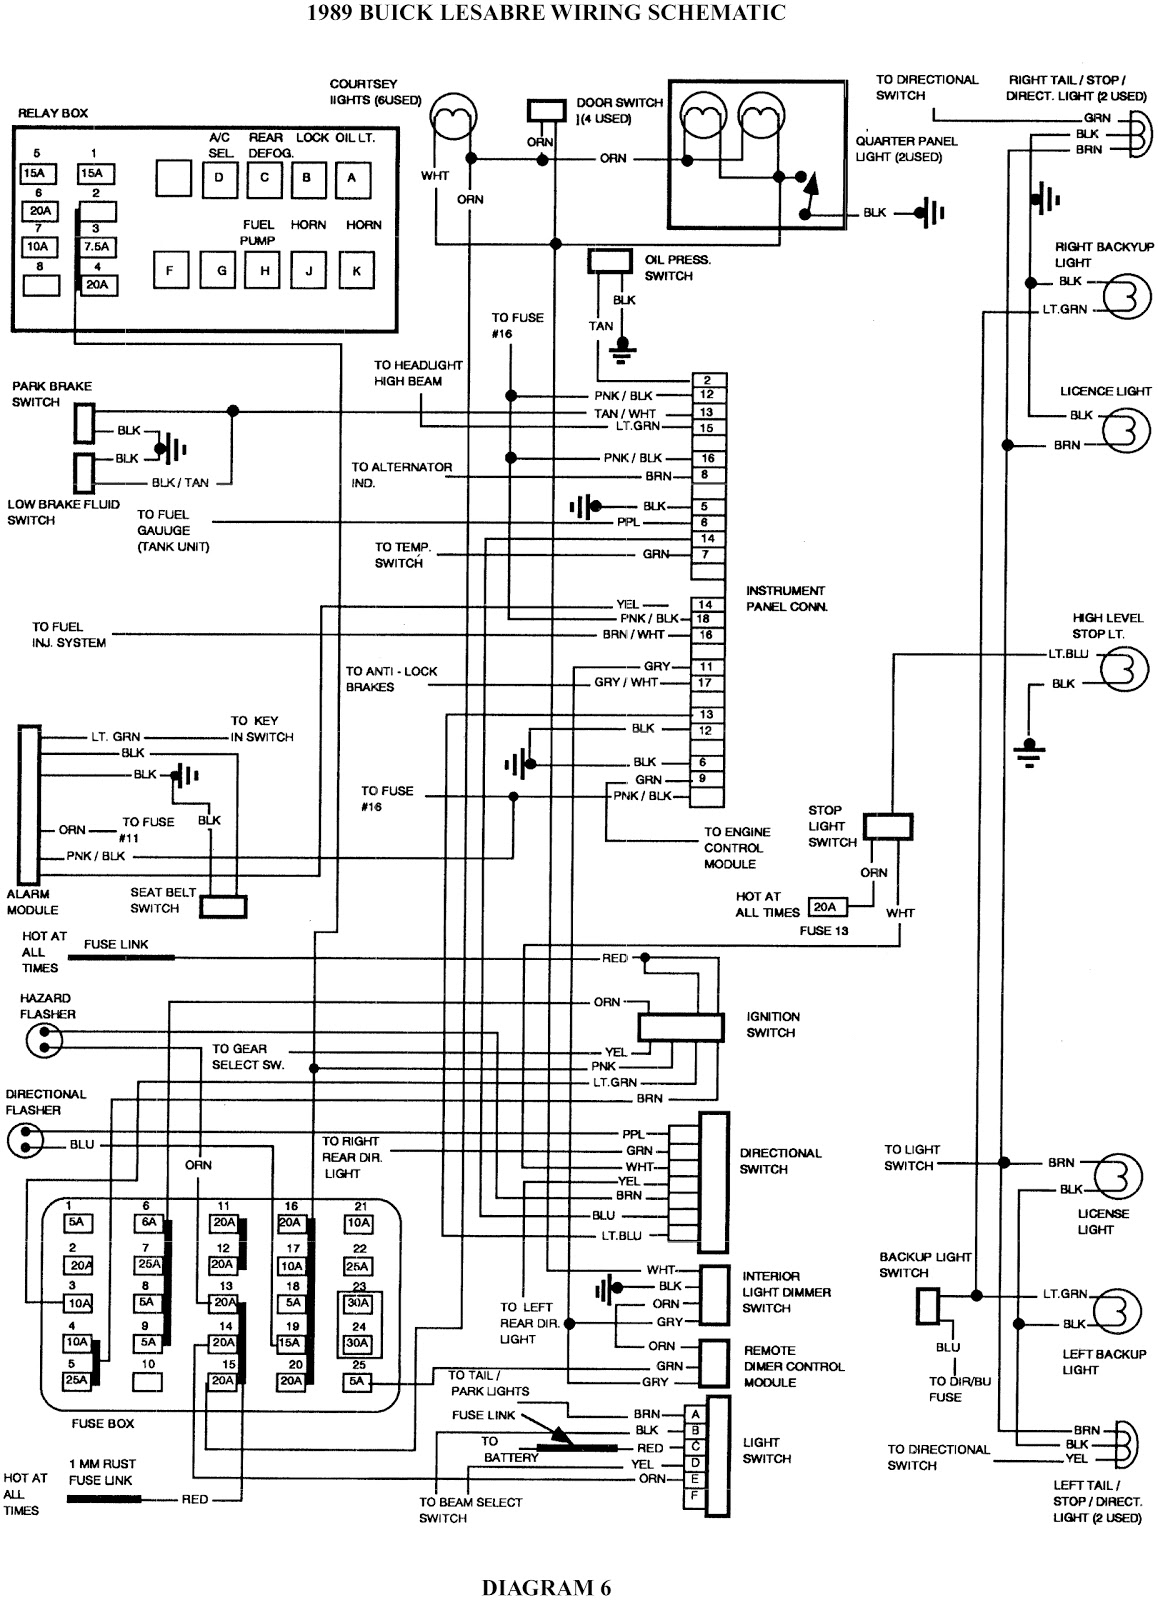 Chevrolet Silverado L Fuse Box Diagram also Screen Shot At Am furthermore Buick Reatta likewise Chrysler Sebring Mk Sedan Fuse Box Power Distribution Box also F Fdqucfovxosc Rect. on 1996 buick regal wiring diagram